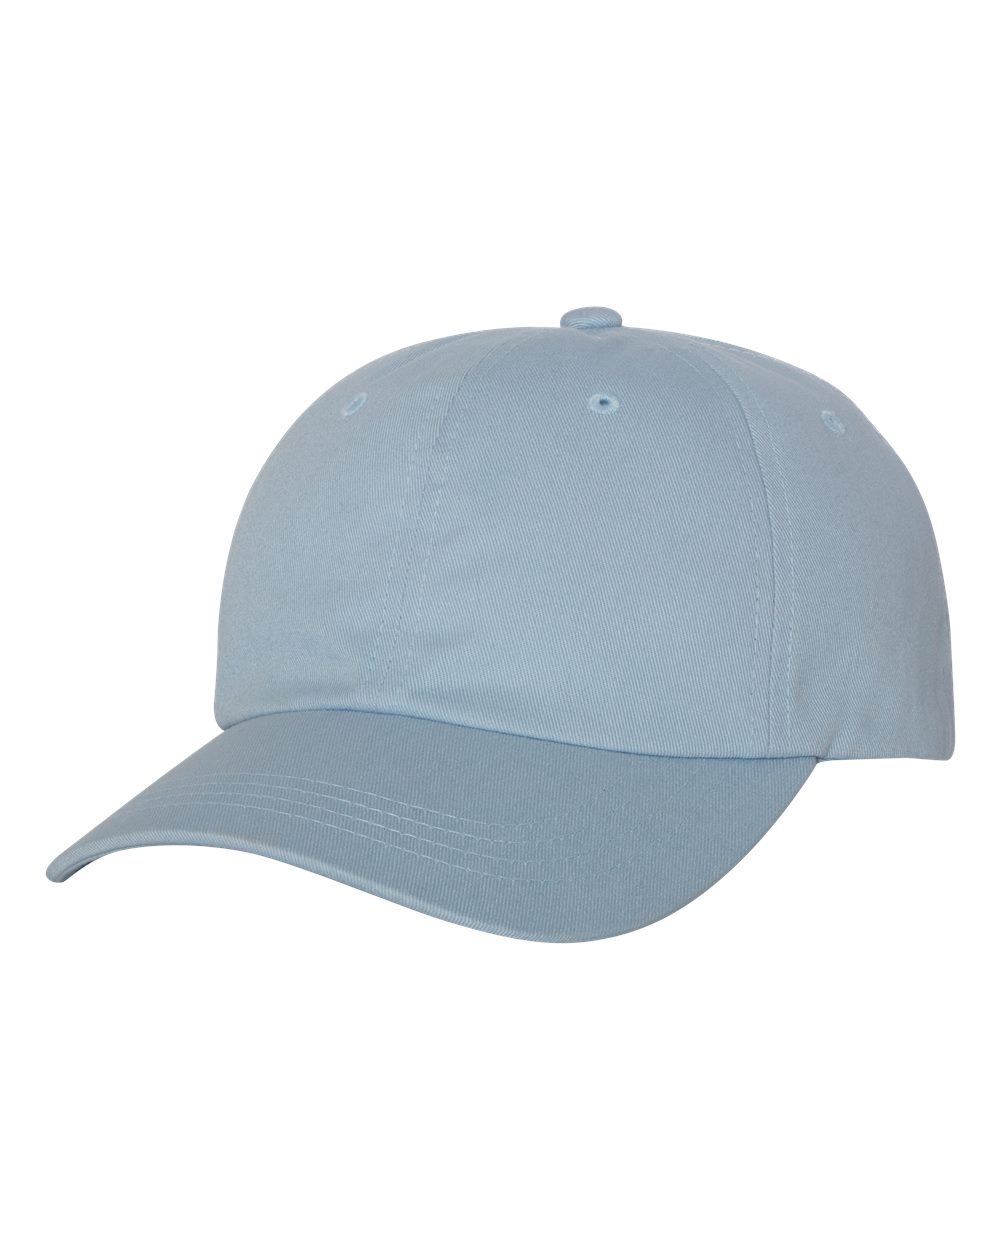 986223b7683 Yupoong 6245CM - Unstructured Classic Dad s Cap  5.00 - Headwear